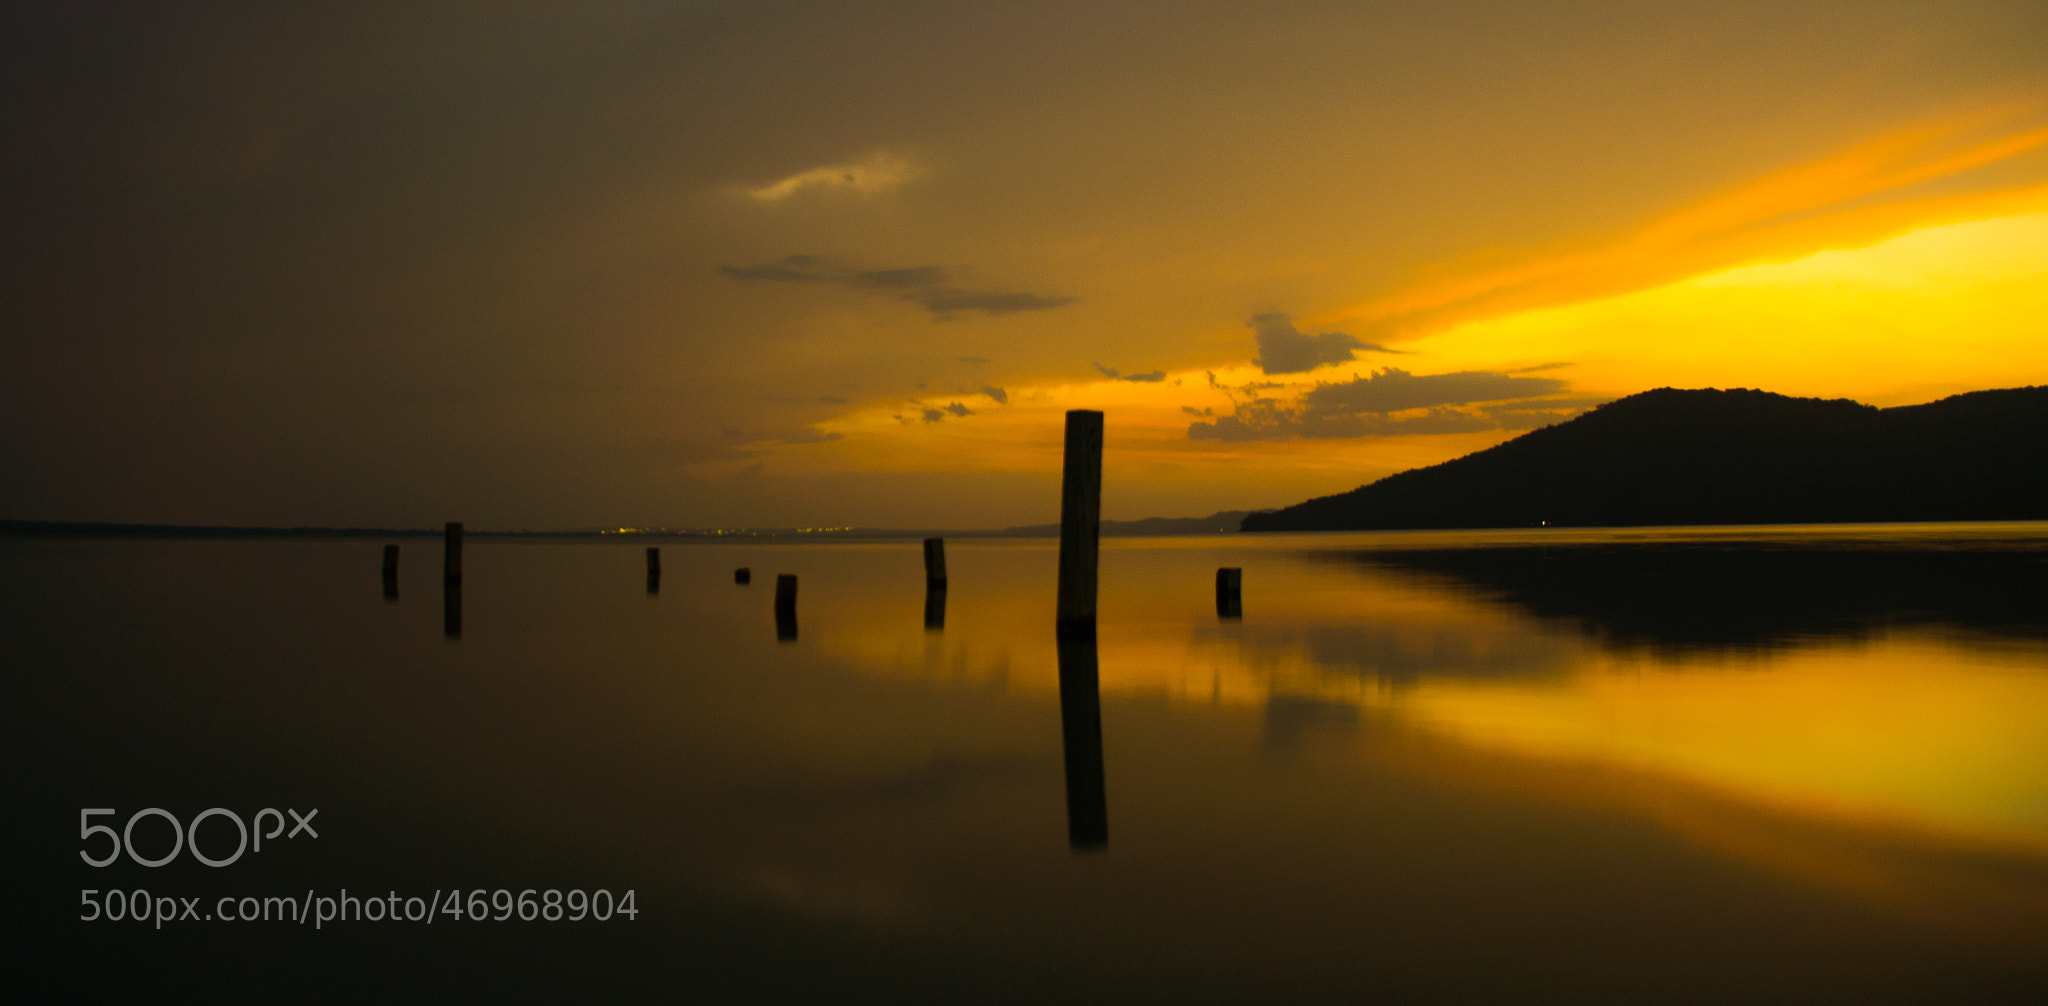 Photograph Sunset over Petén - Itzá Lake (Guatemala) by Lluis Grau on 500px